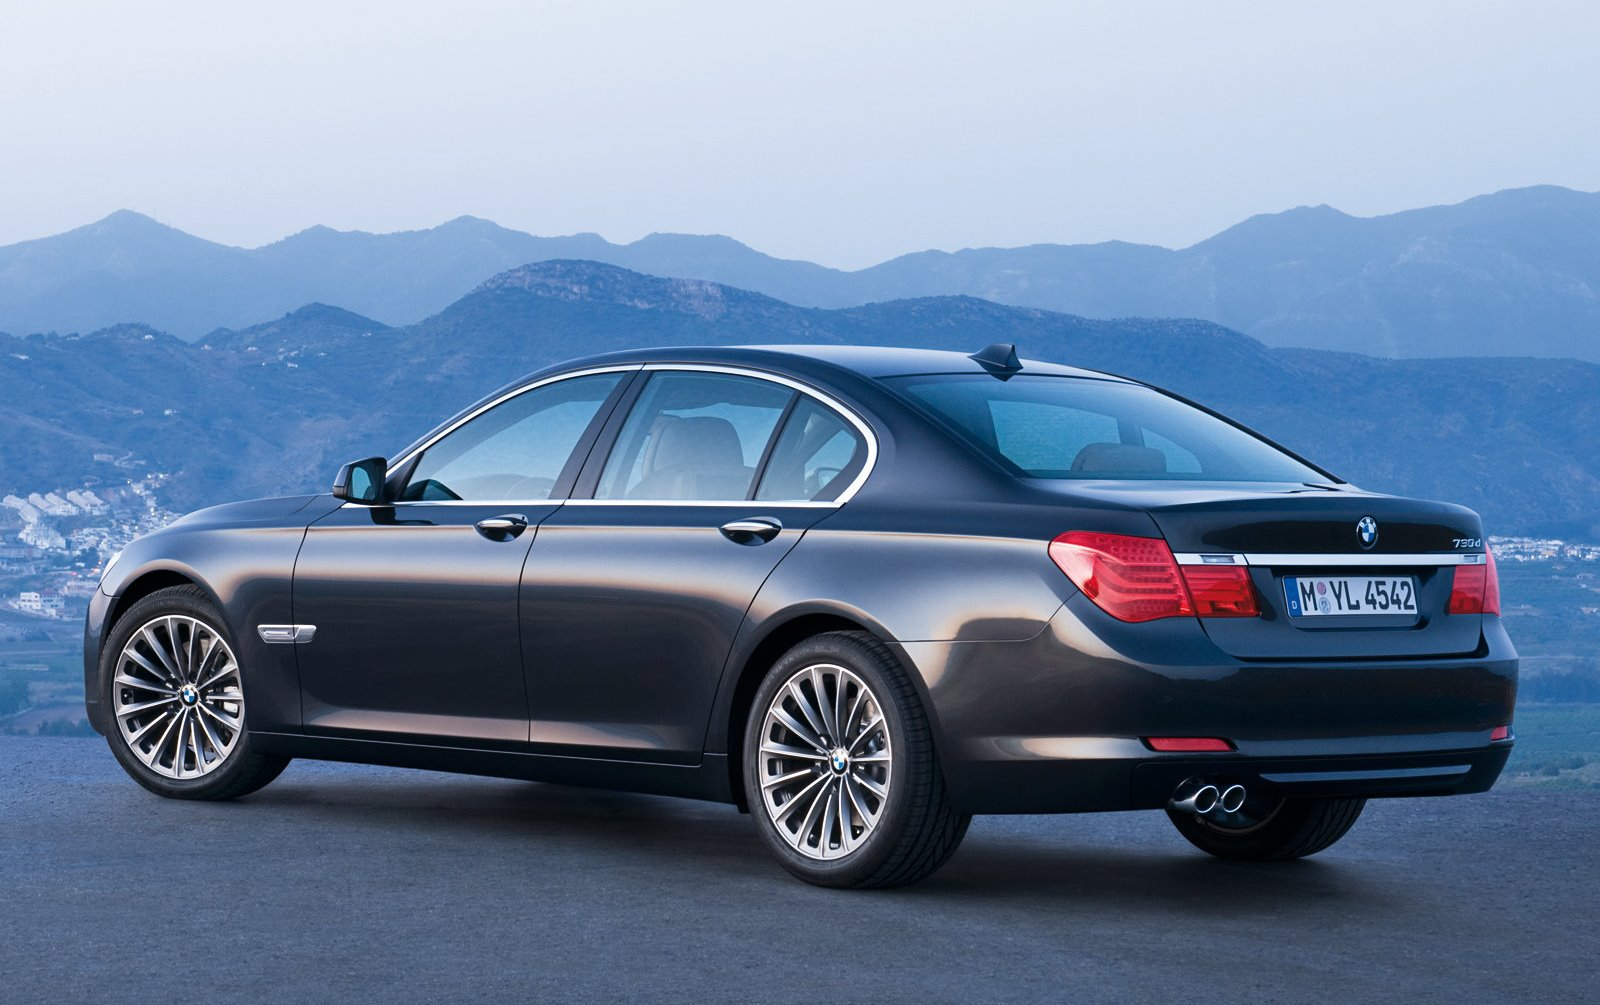 Bmw 7 Series Price In Pakistan Pictures And Reviews Pakwheels